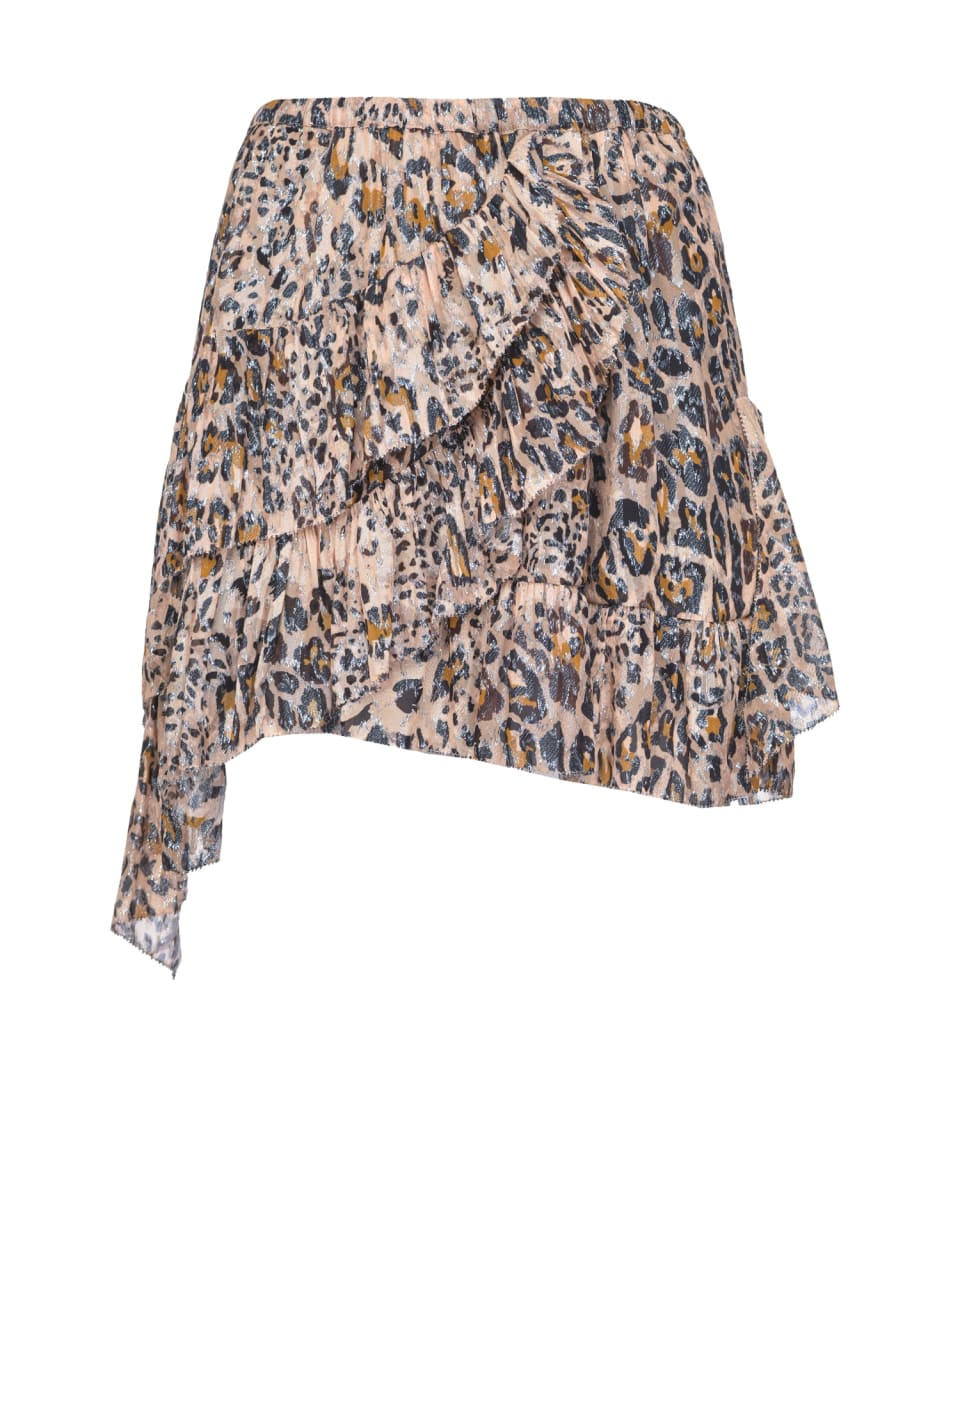 Fil coupé leopard print mini skirt